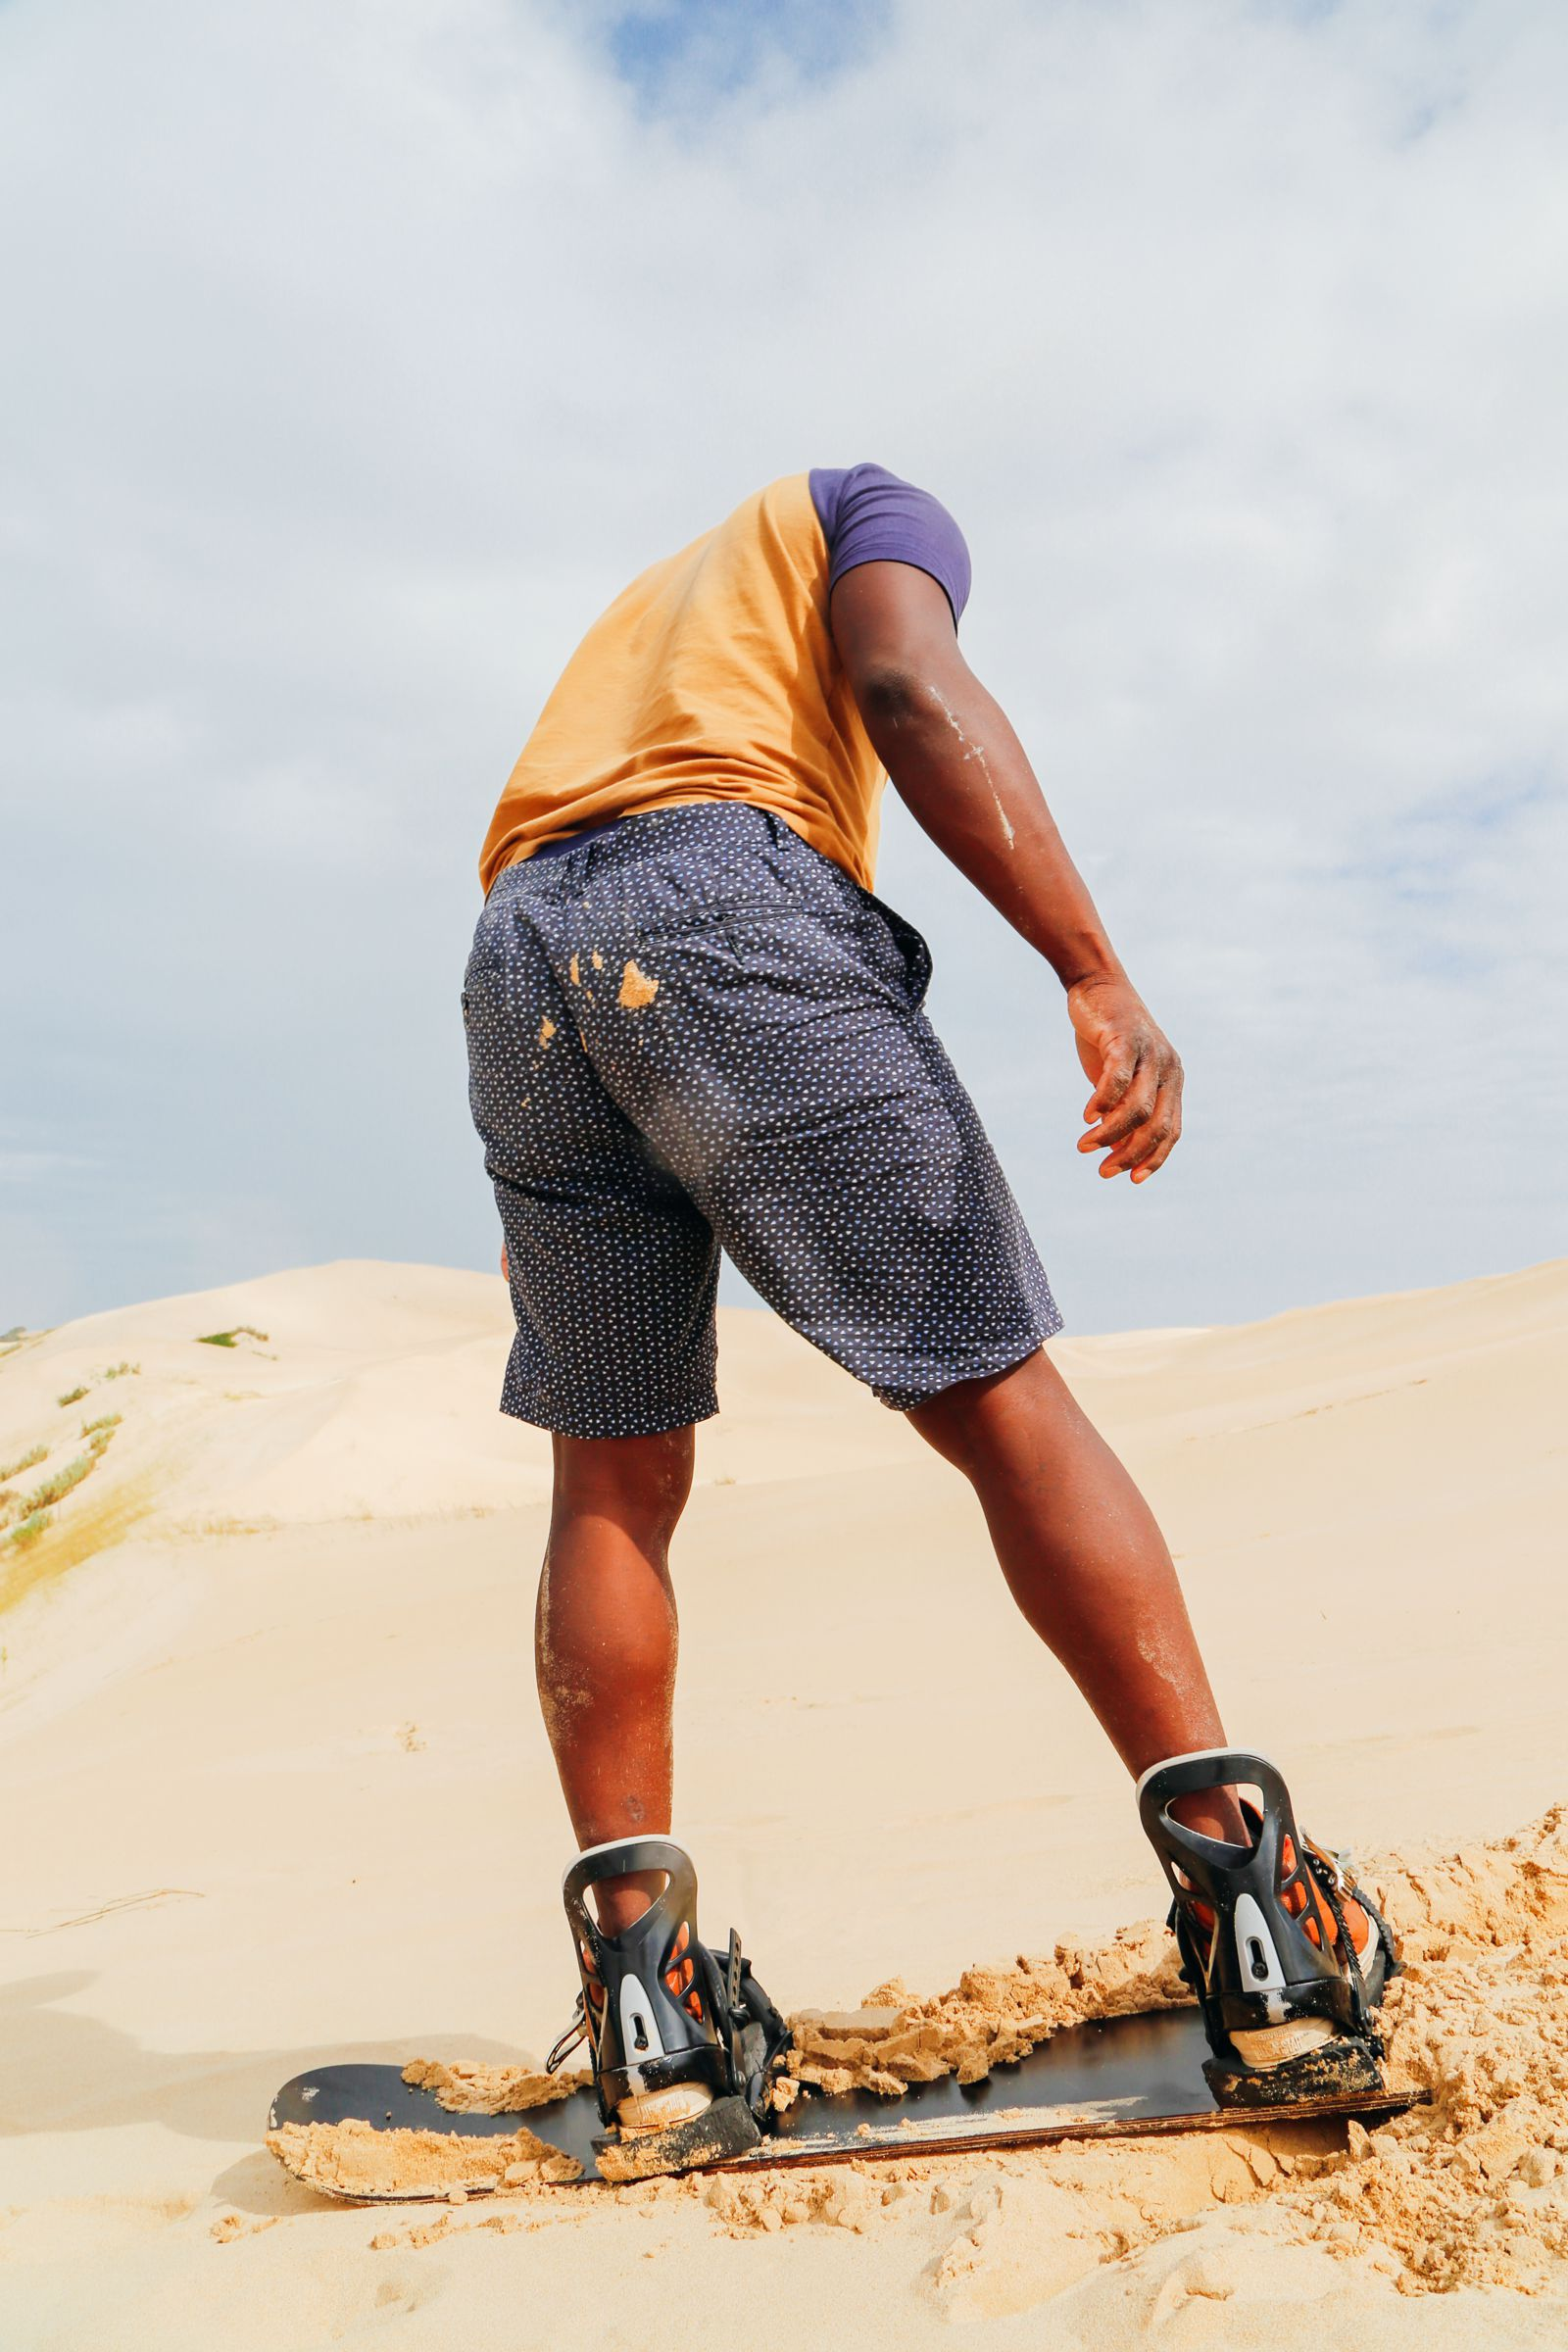 What It's Like To Try Sandboarding For The Very First Time! (33)